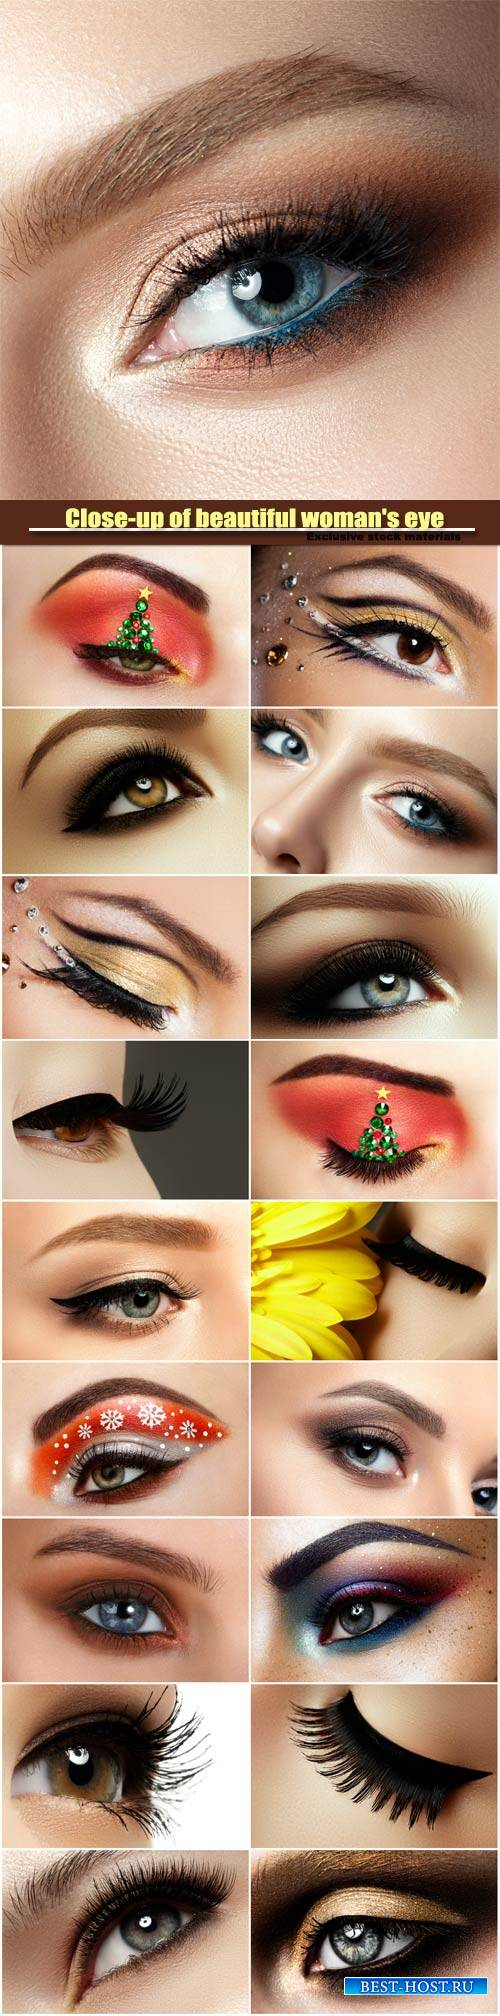 Close-up of beautiful woman's eye, colored eyeshadows, makeover christmas  ...